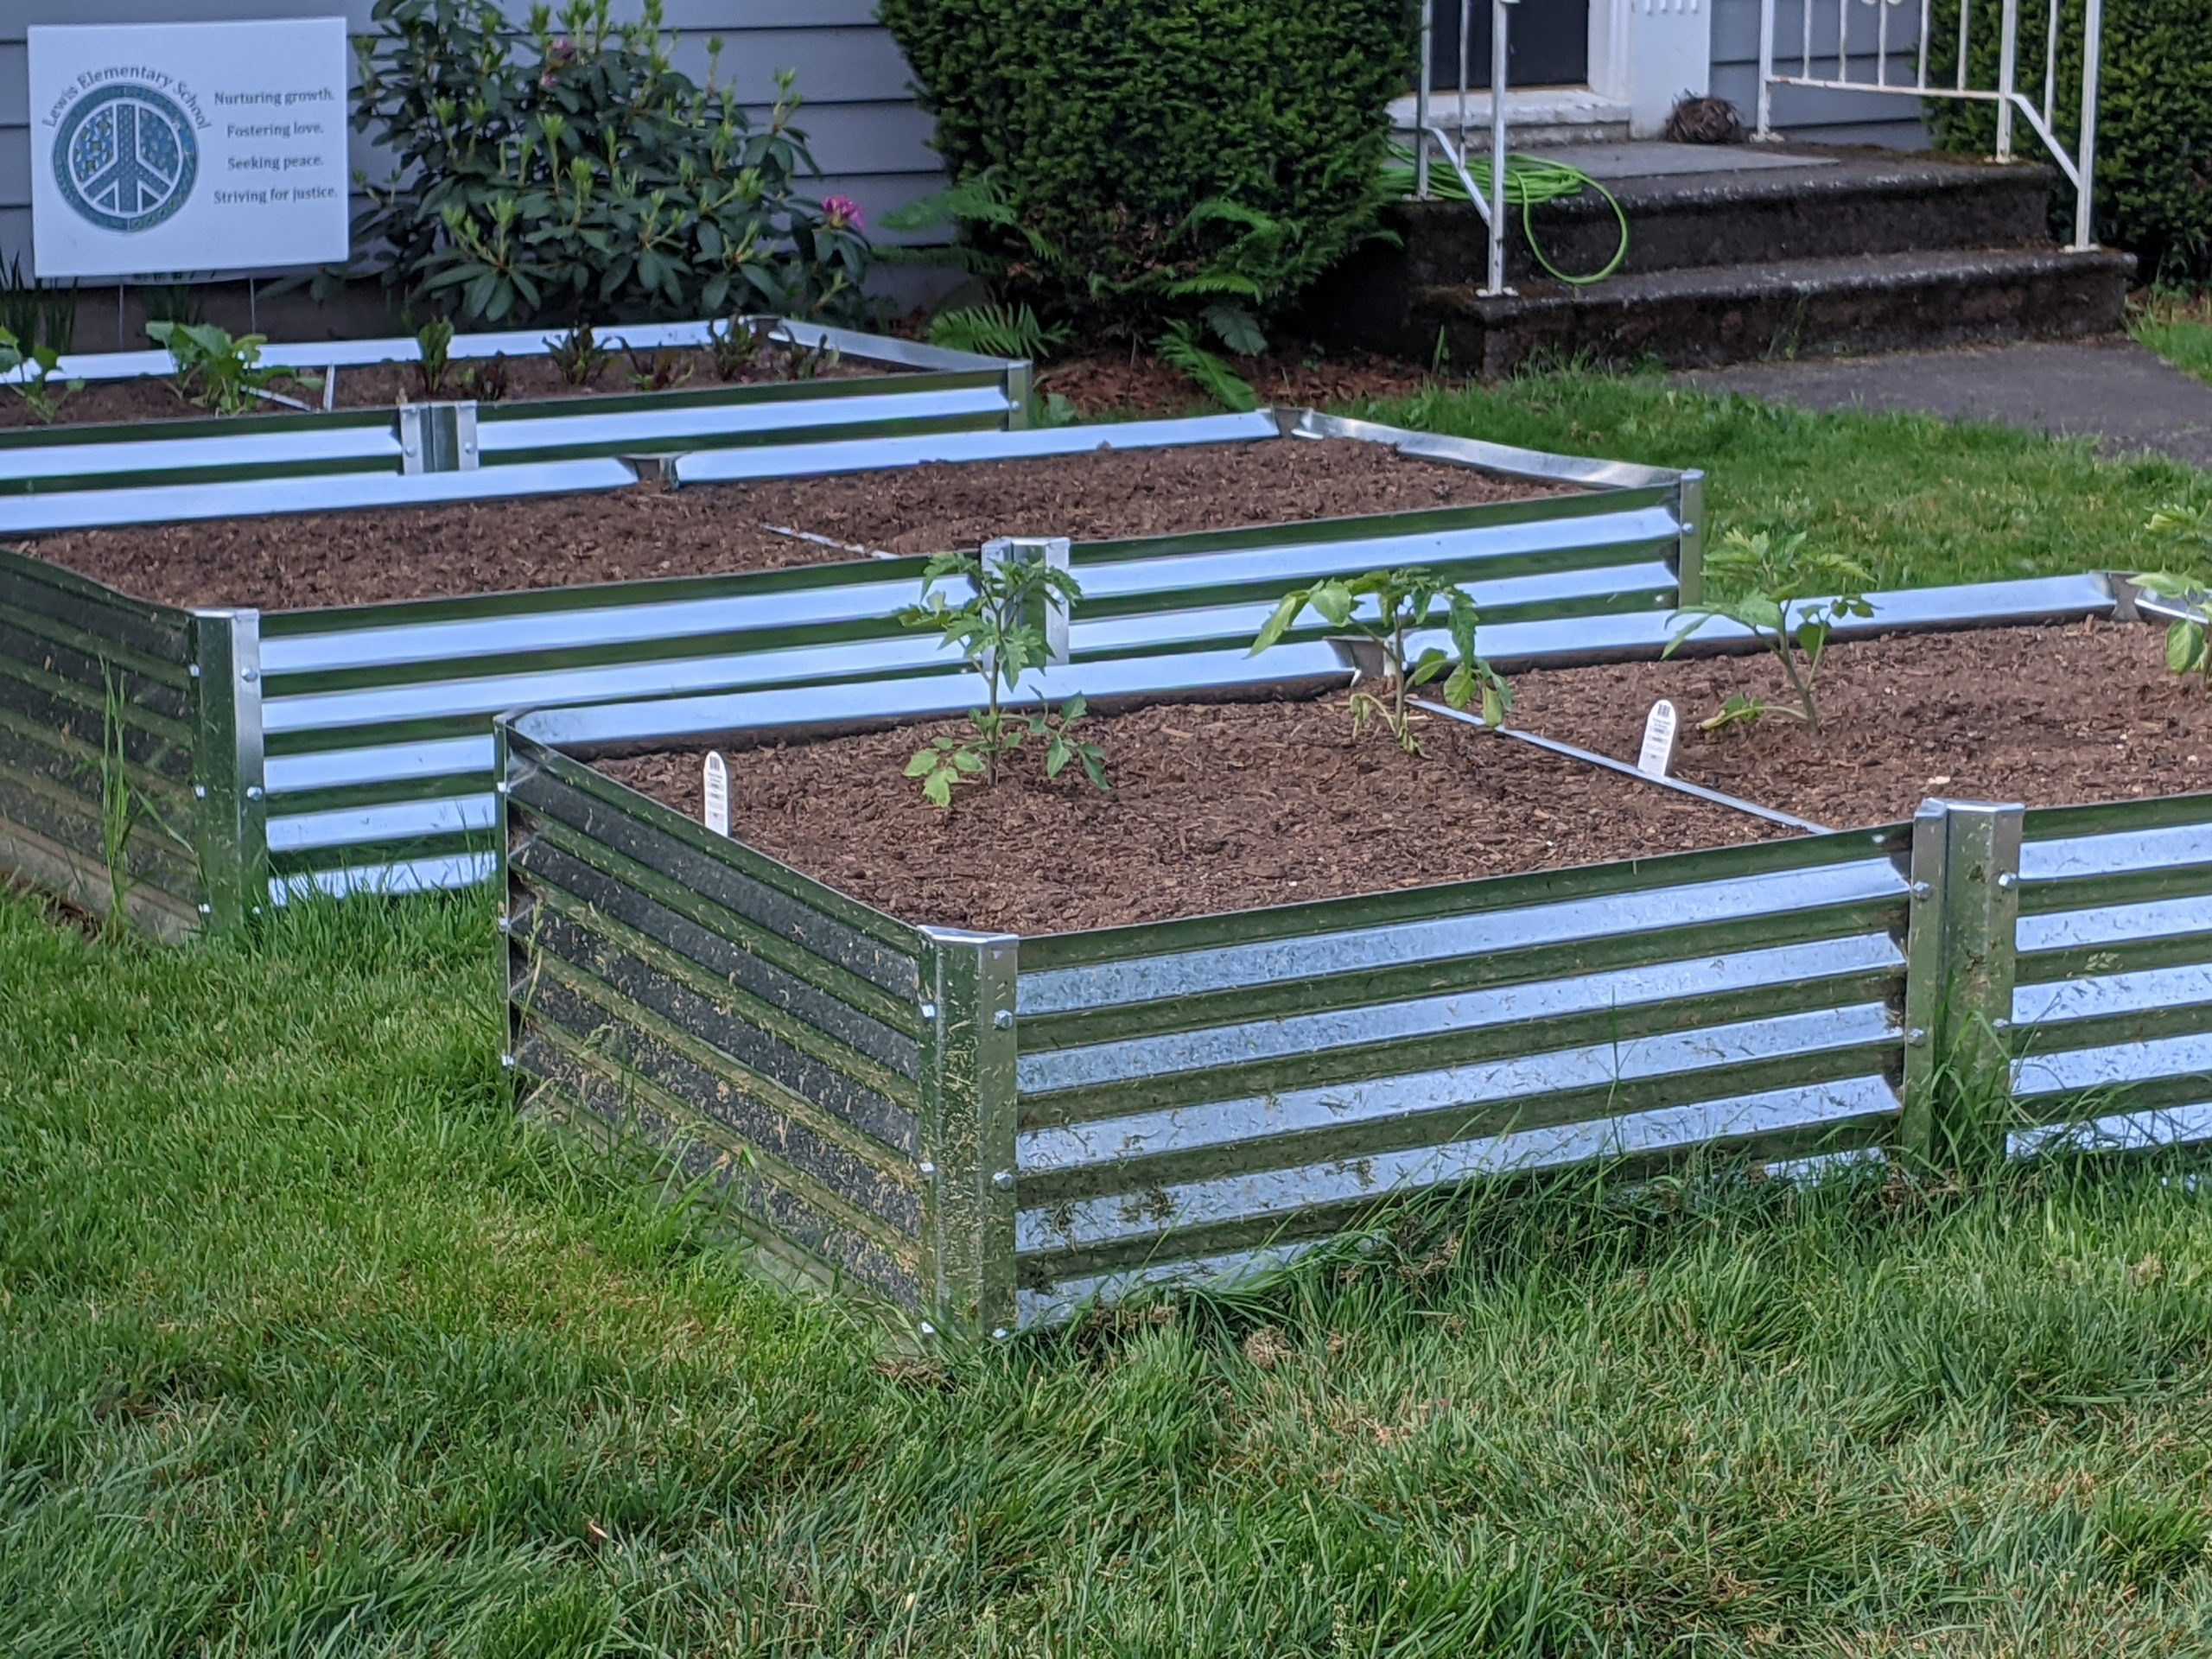 corrugated metal planting beds in grass with tomatoes